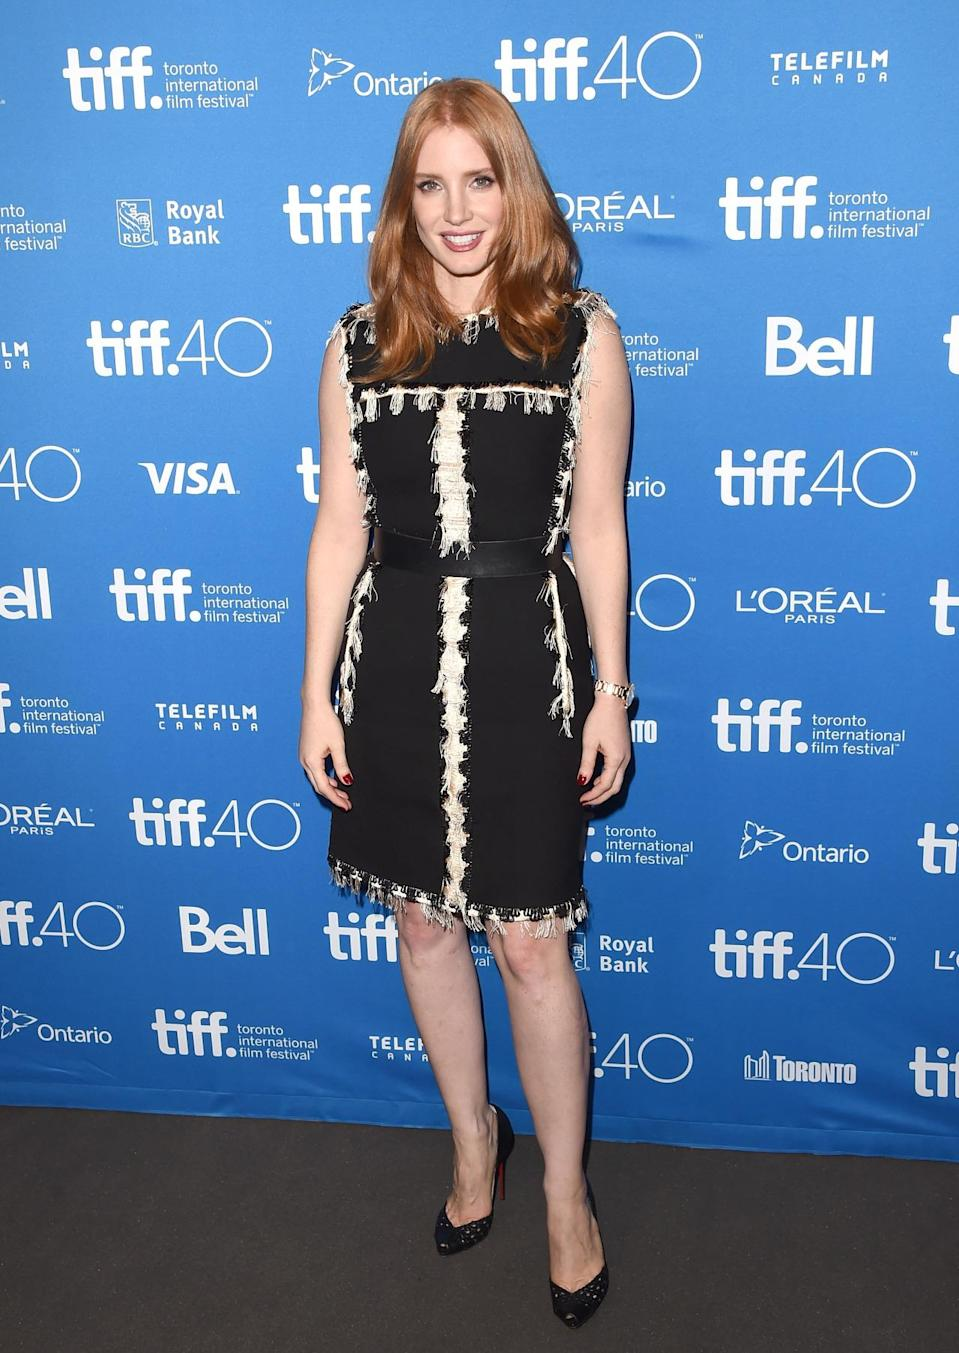 """<p>From day to night, Jessica Chastain was high-end perfection. At a press conference for """"The Martian,"""" the actress wore a Lanvin LBD with beaded strand detailing. </p>"""